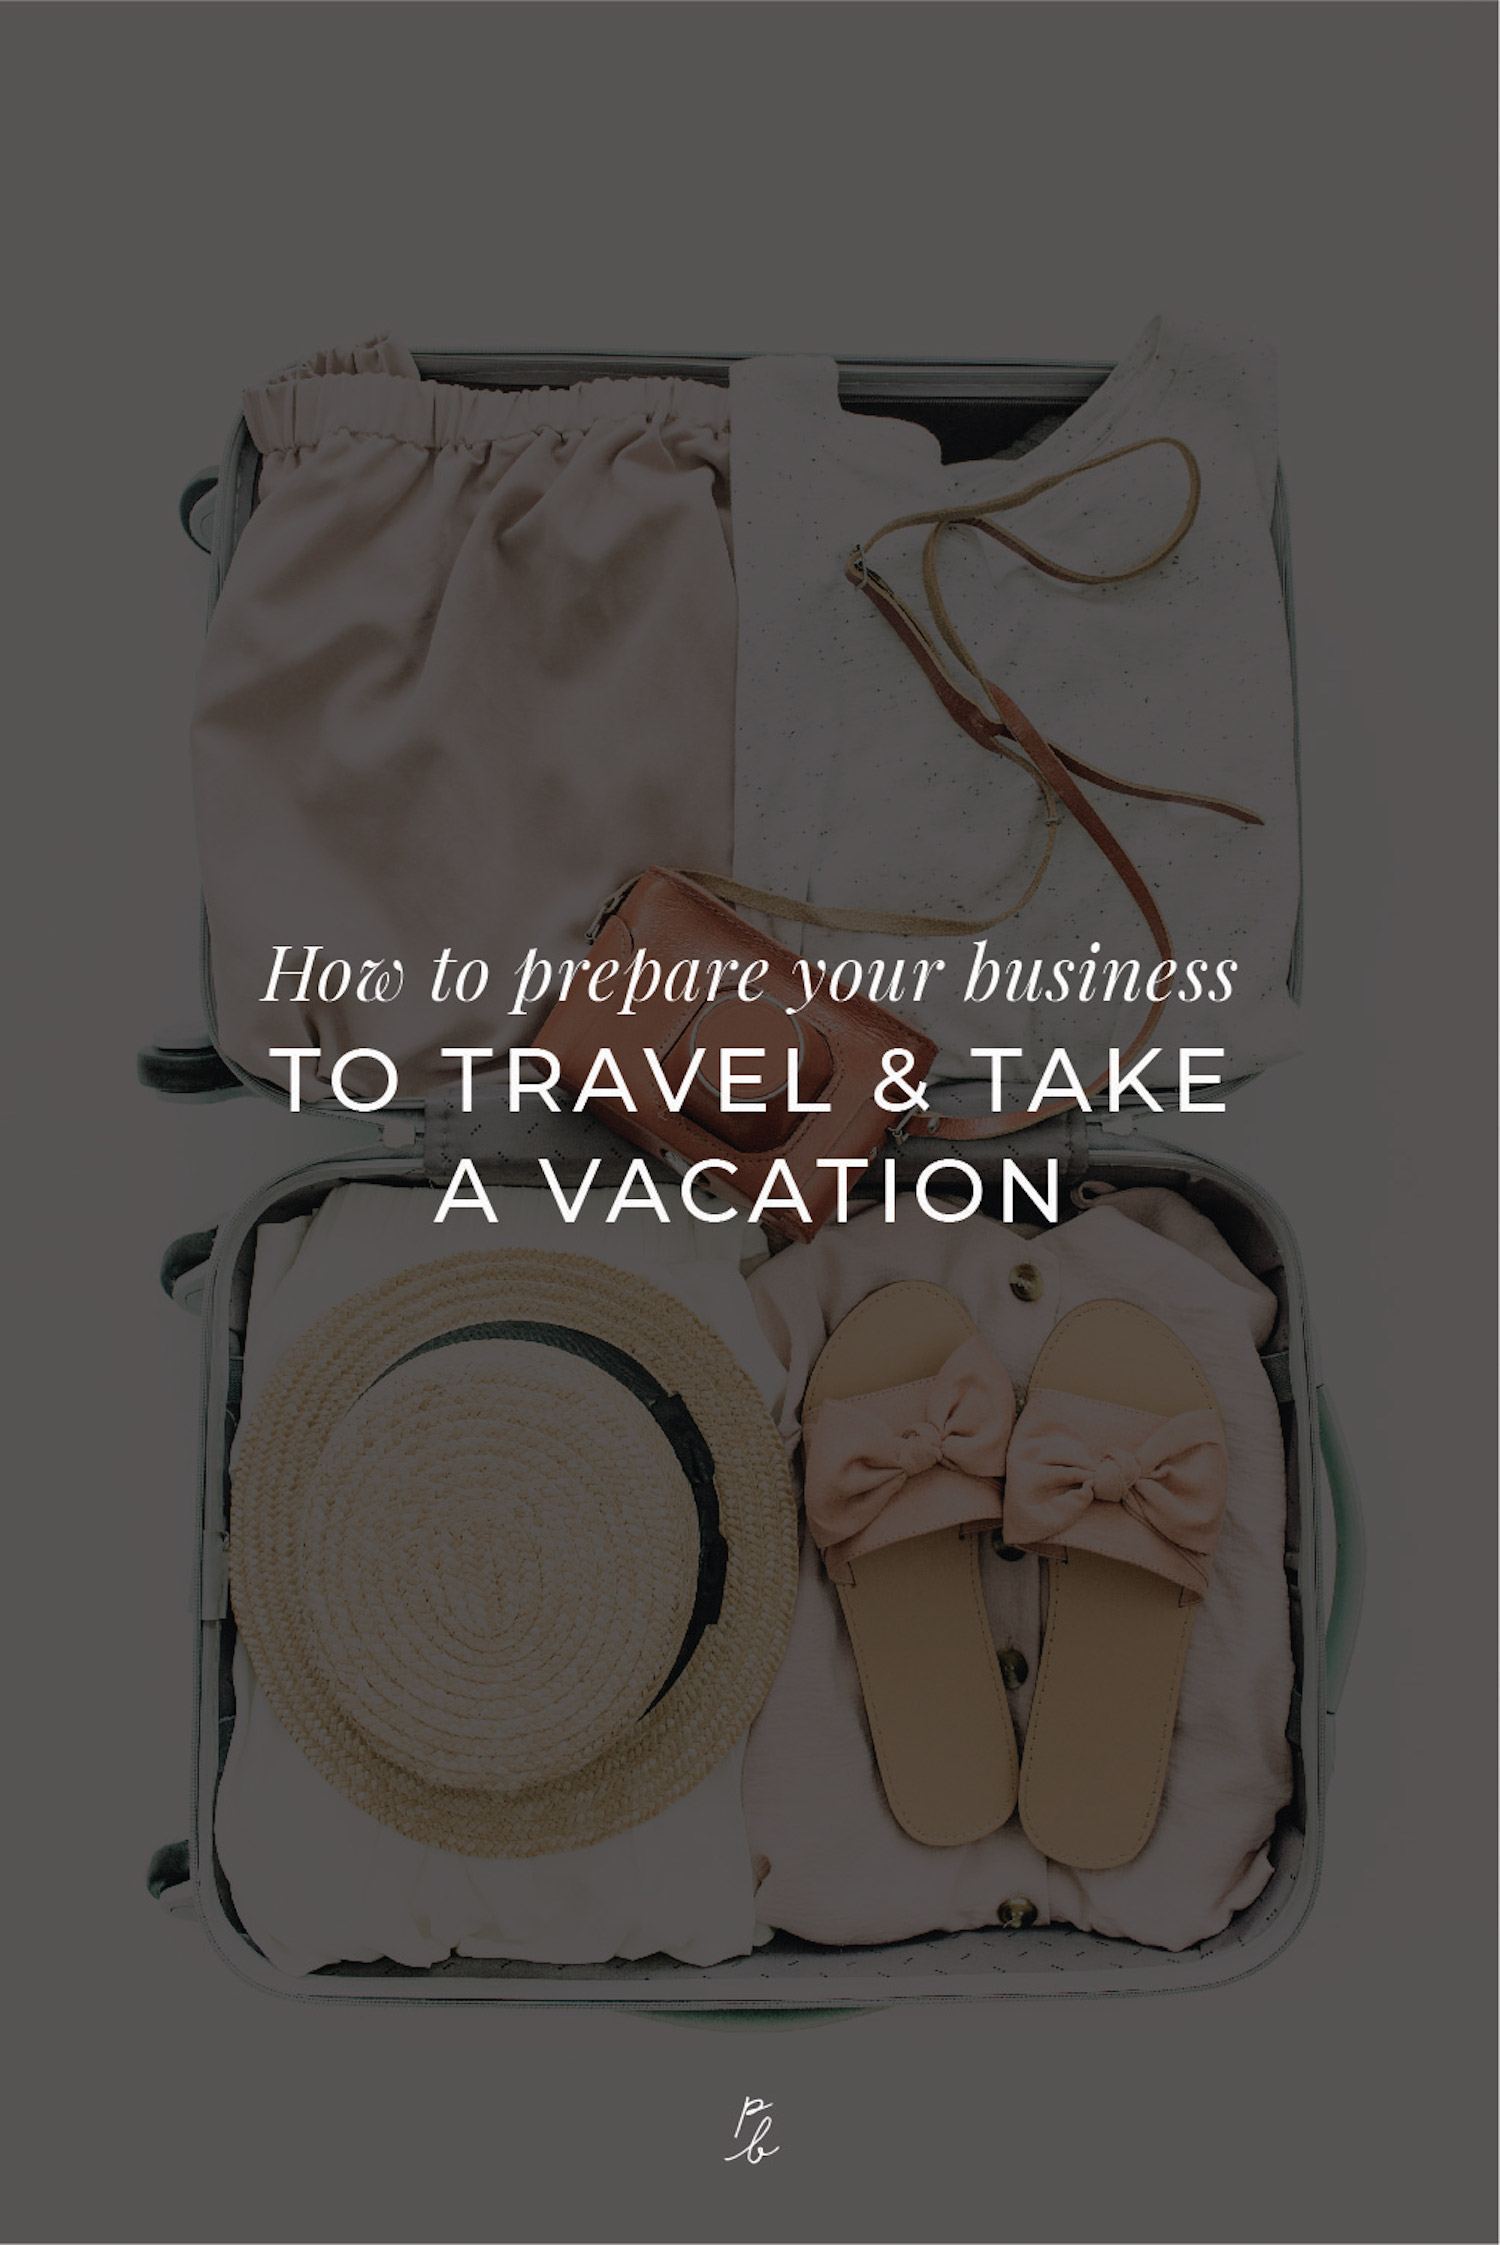 How to prepare your business to travel & take a vacation-05.jpg